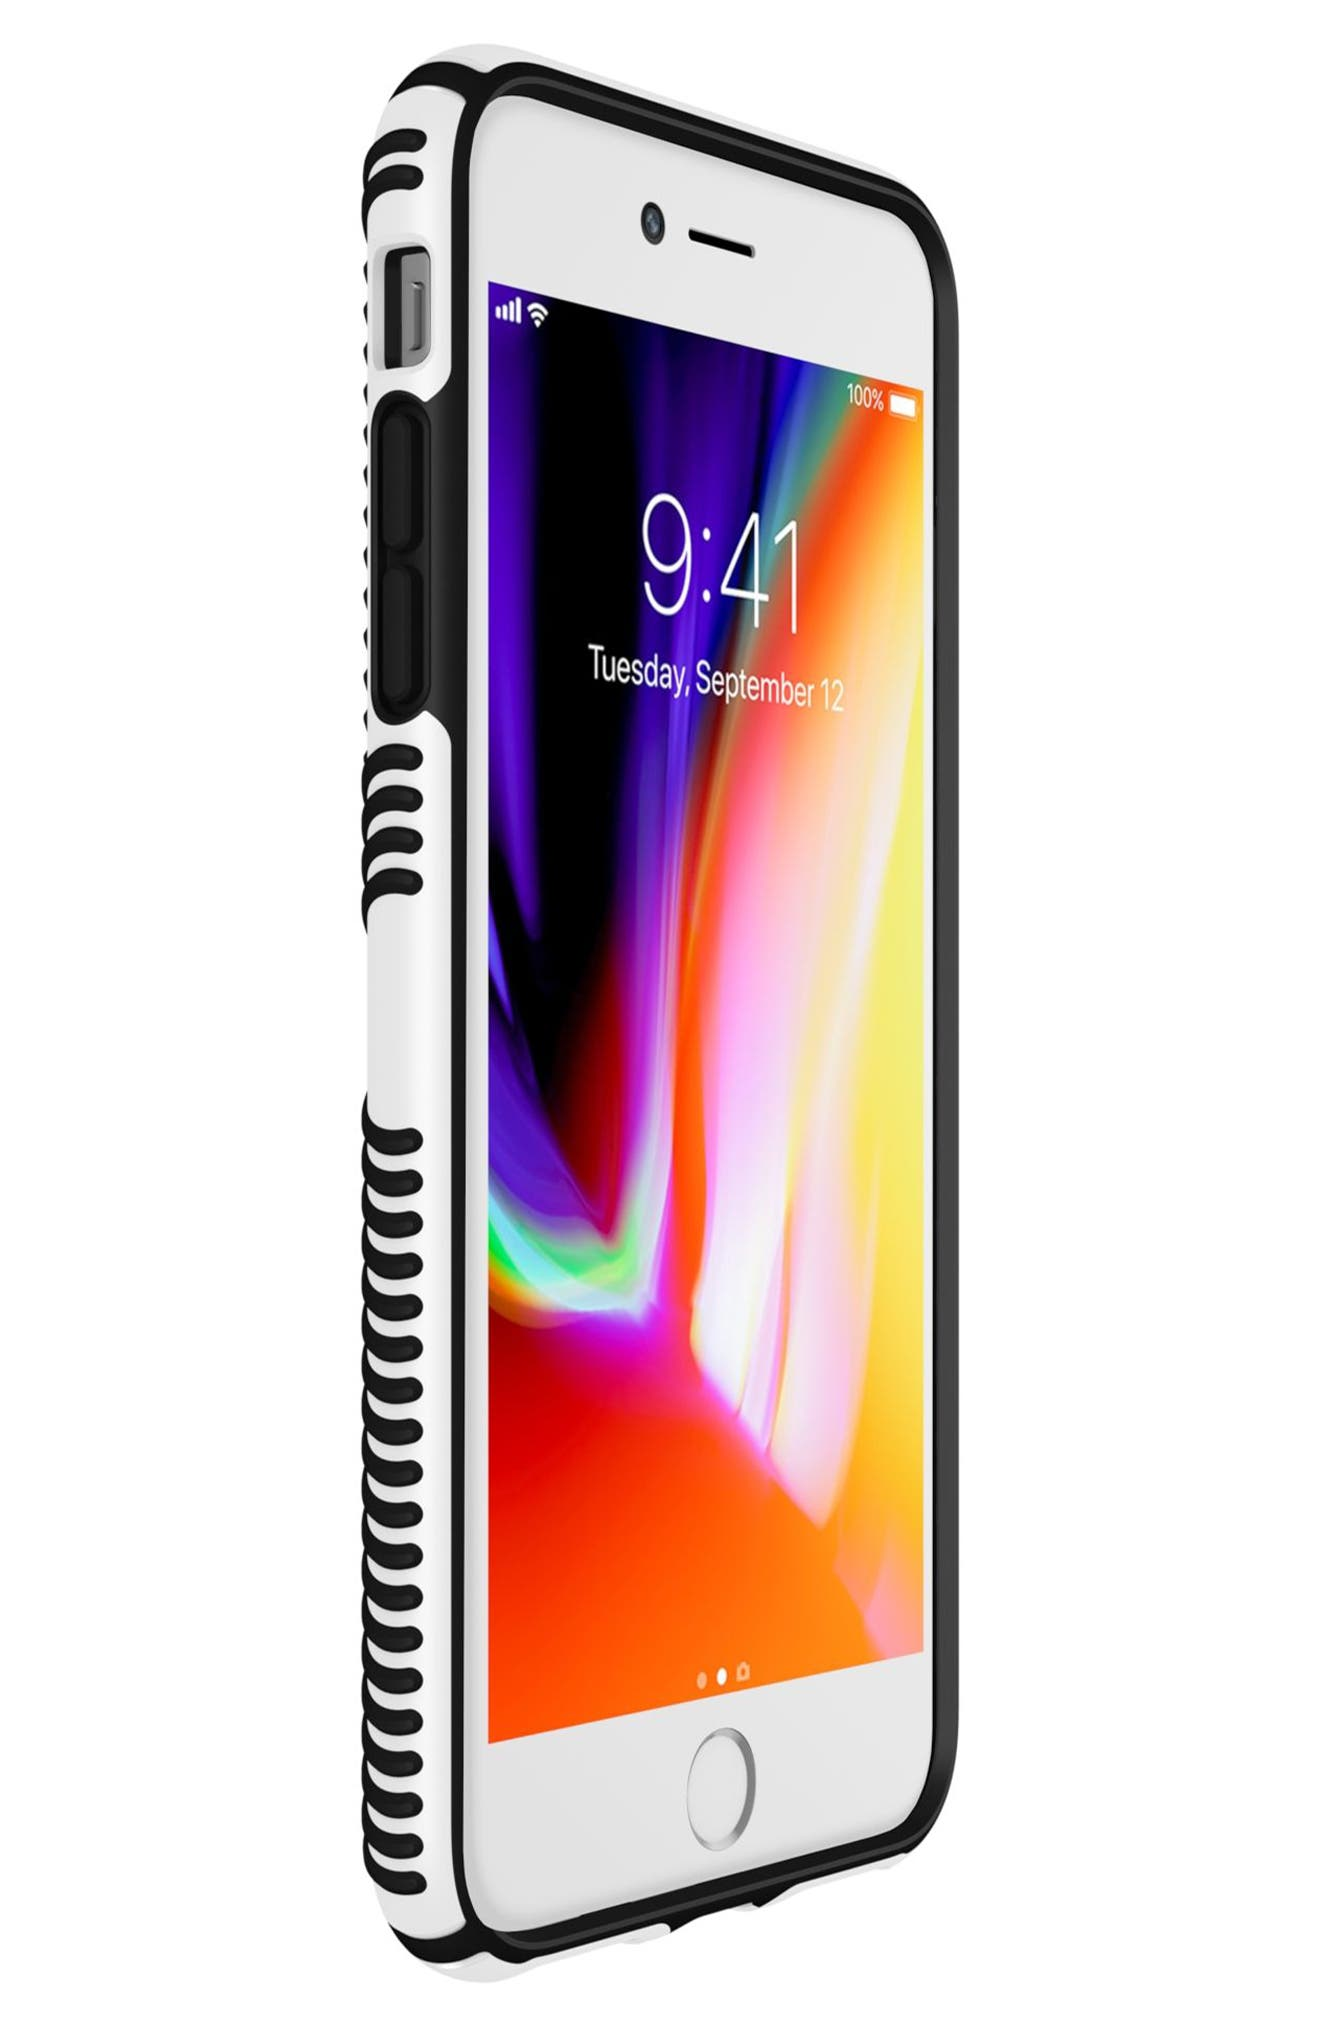 Grip iPhone 6/6s/7/8 Plus Case,                             Alternate thumbnail 6, color,                             White/ Black